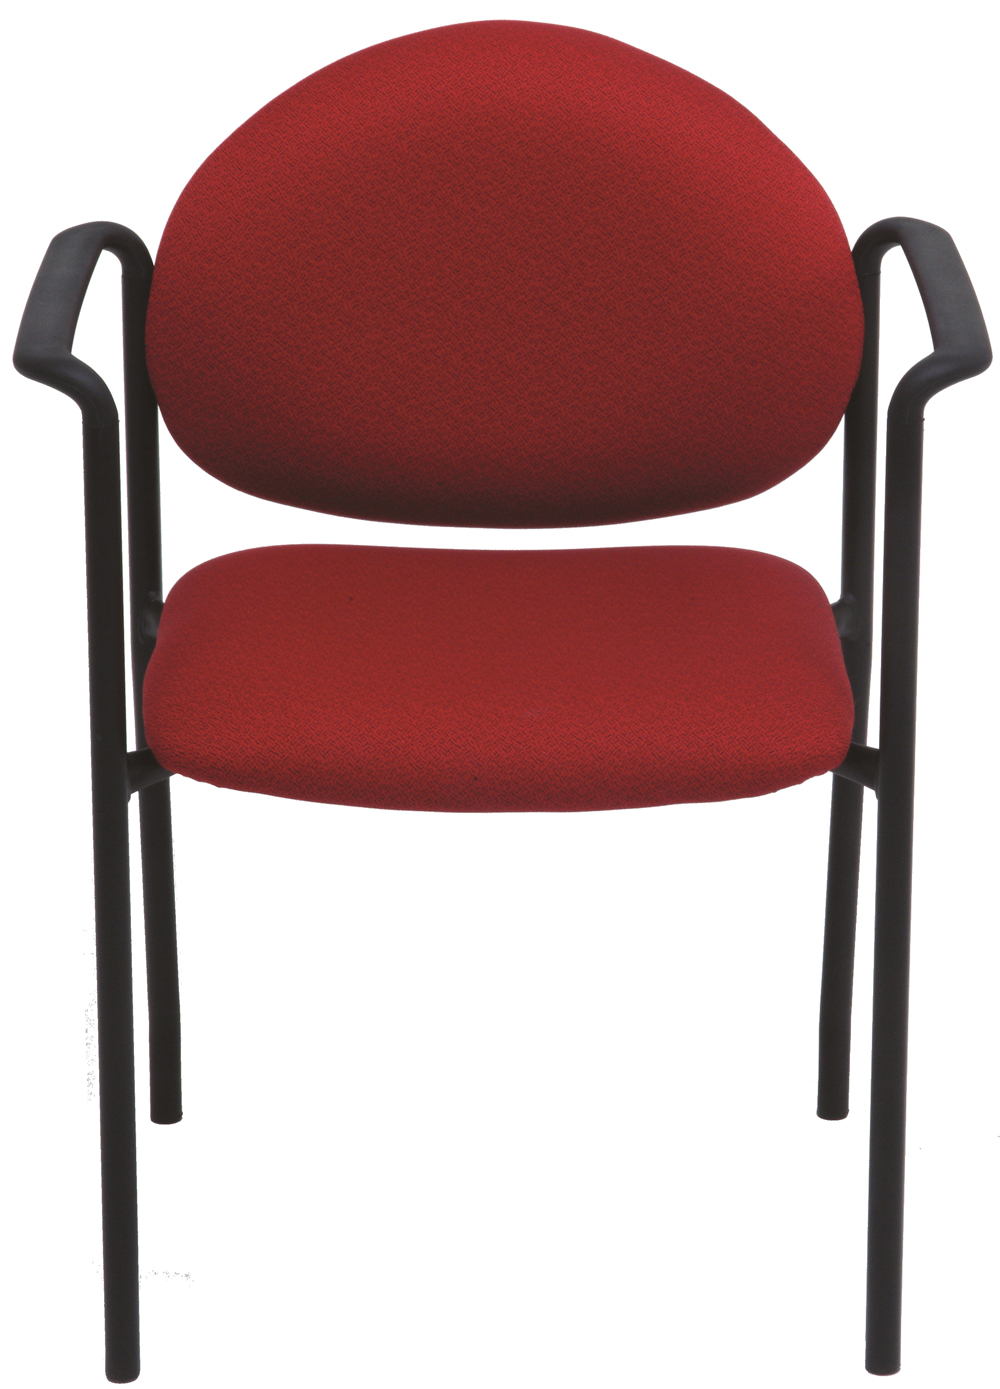 Red stacking chair with arms and black frame